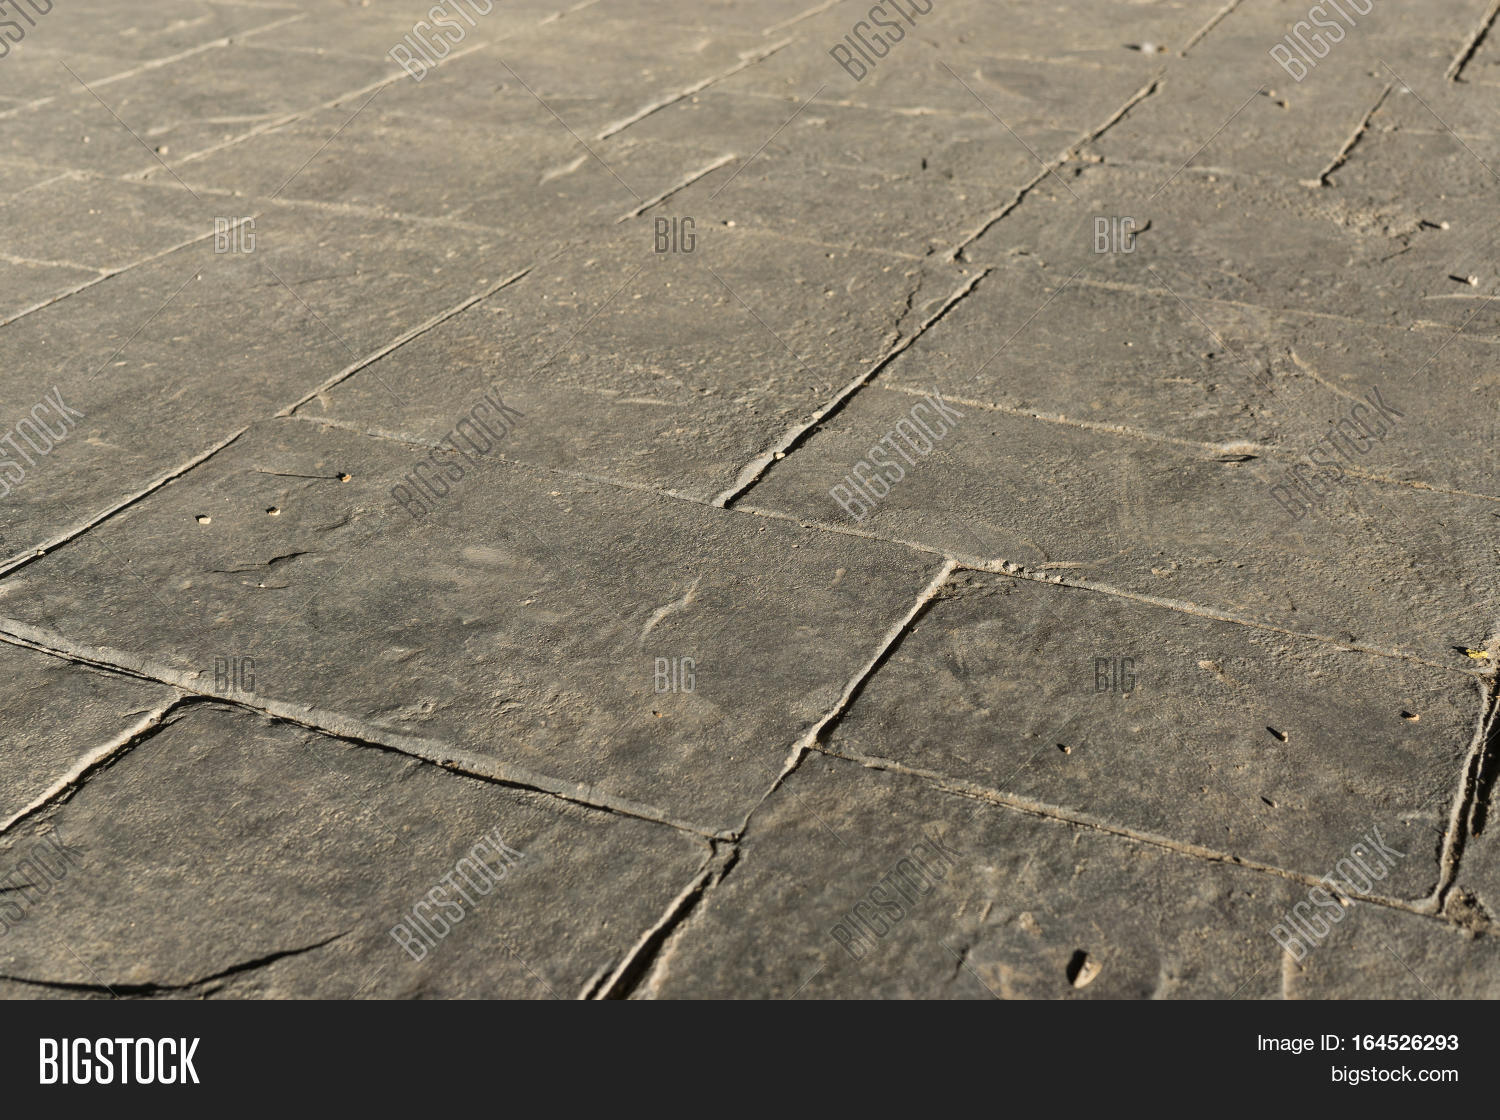 gray stamped concrete image photo